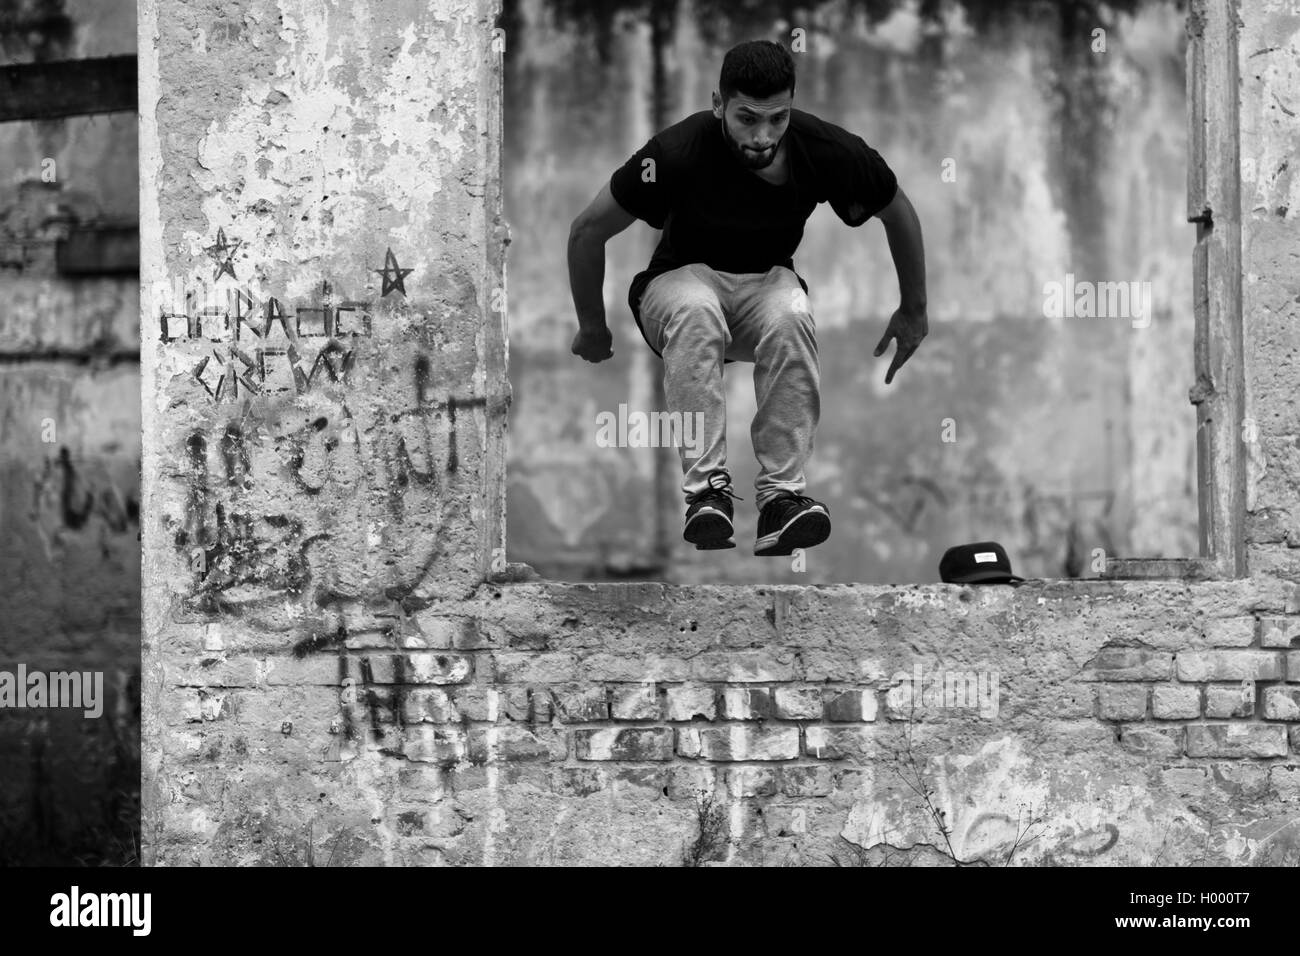 A Colombian parkour runner performs a jump during a free running training session of Plus Parkour team in Bogotá, - Stock Image